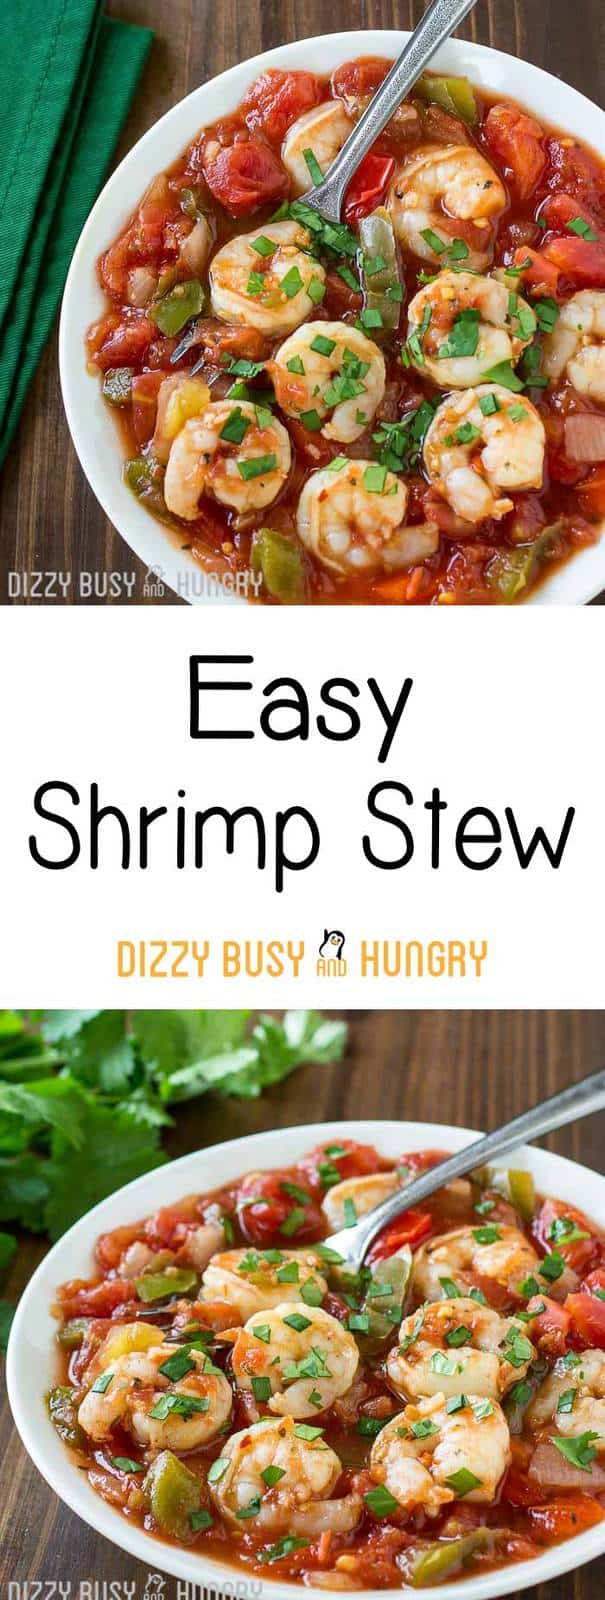 easy shrimp stew recipe long pin